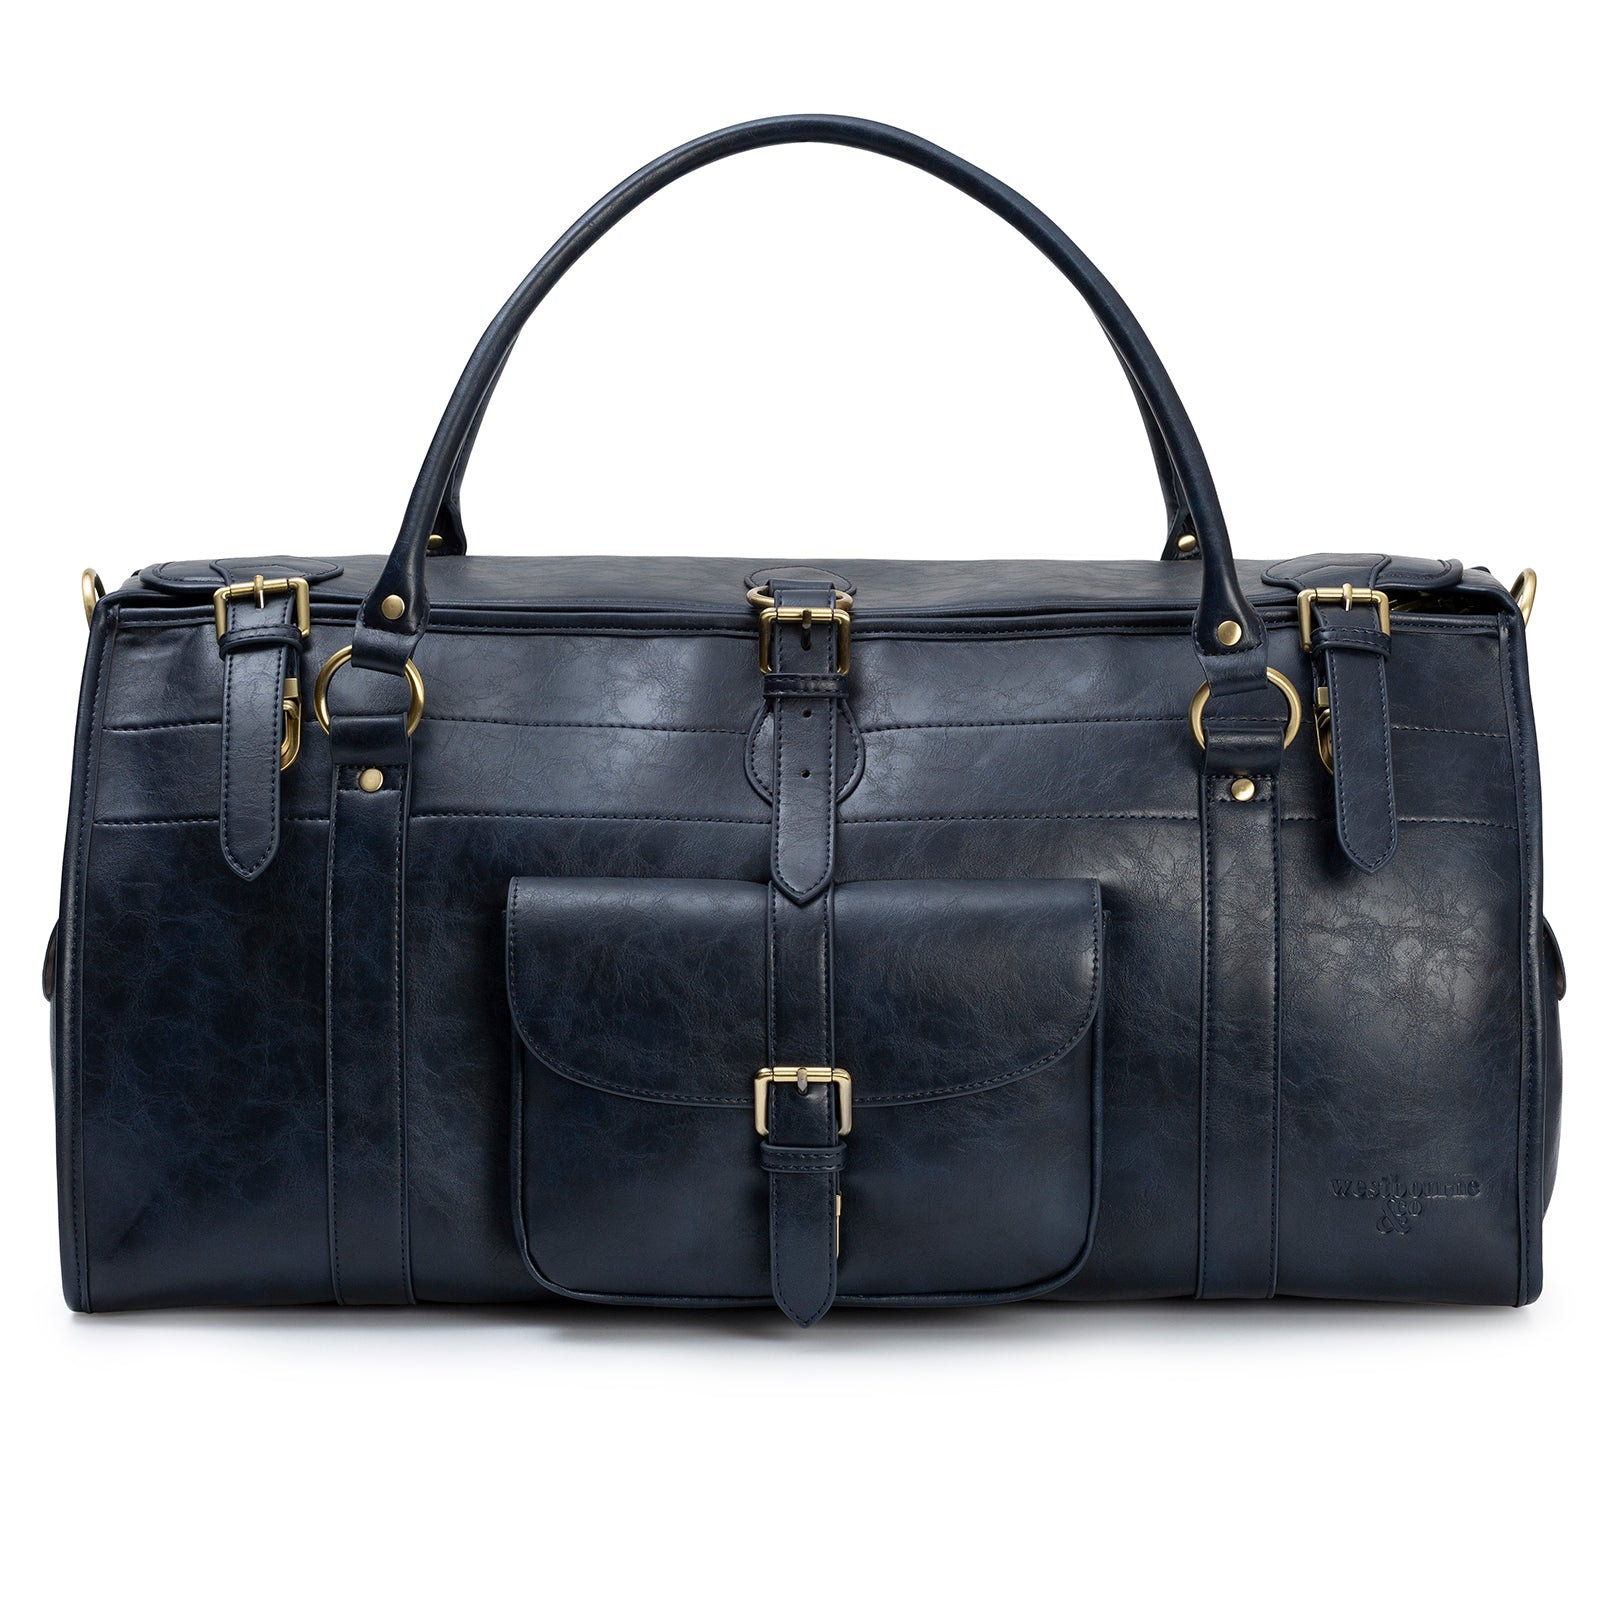 Kensington Travel Bag - Elegant Luxury for Fashionable Travellers